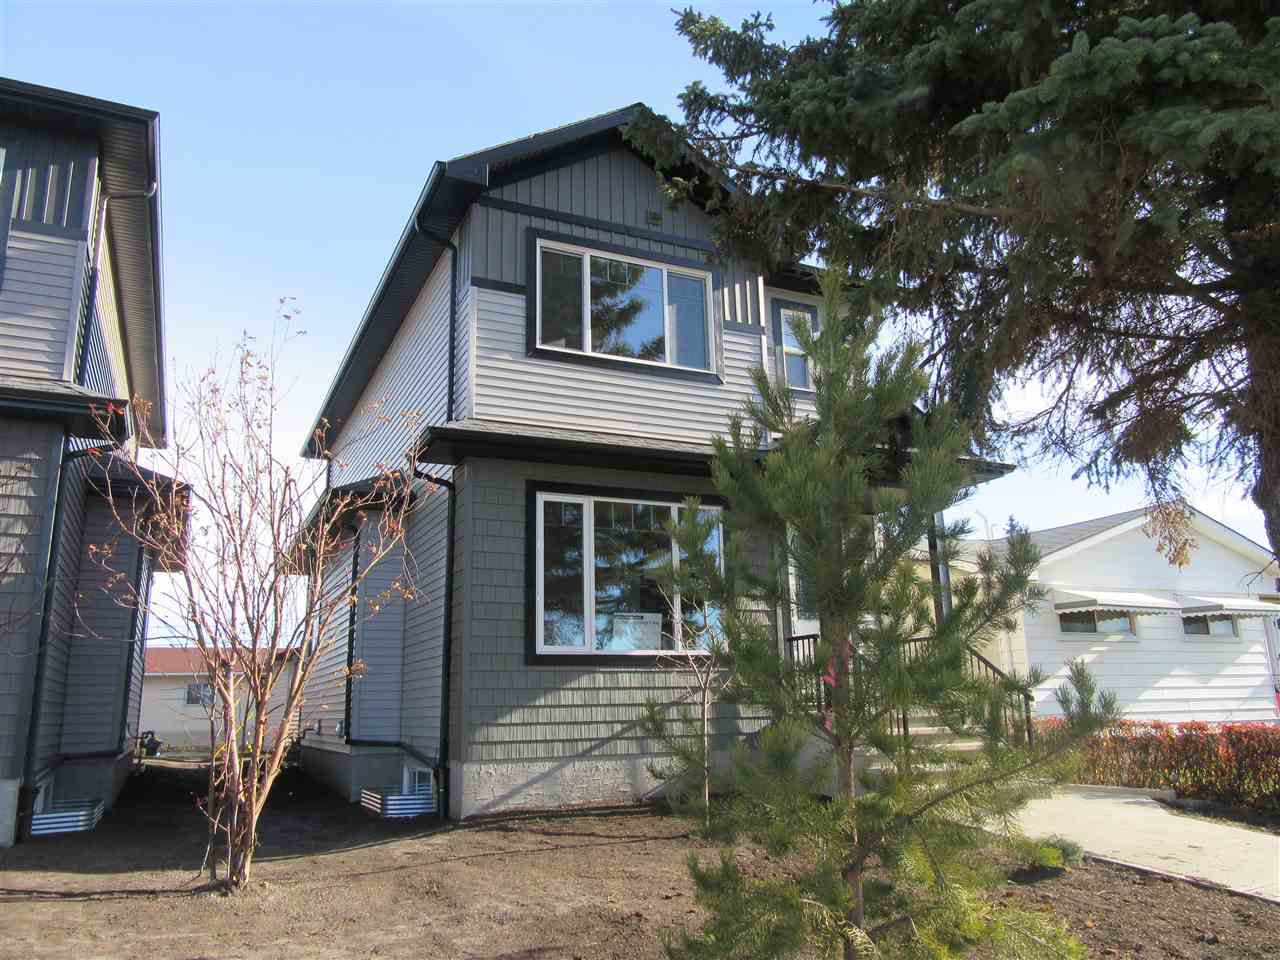 Main Photo: 12739 80 Street in Edmonton: Zone 02 House for sale : MLS®# E4134787